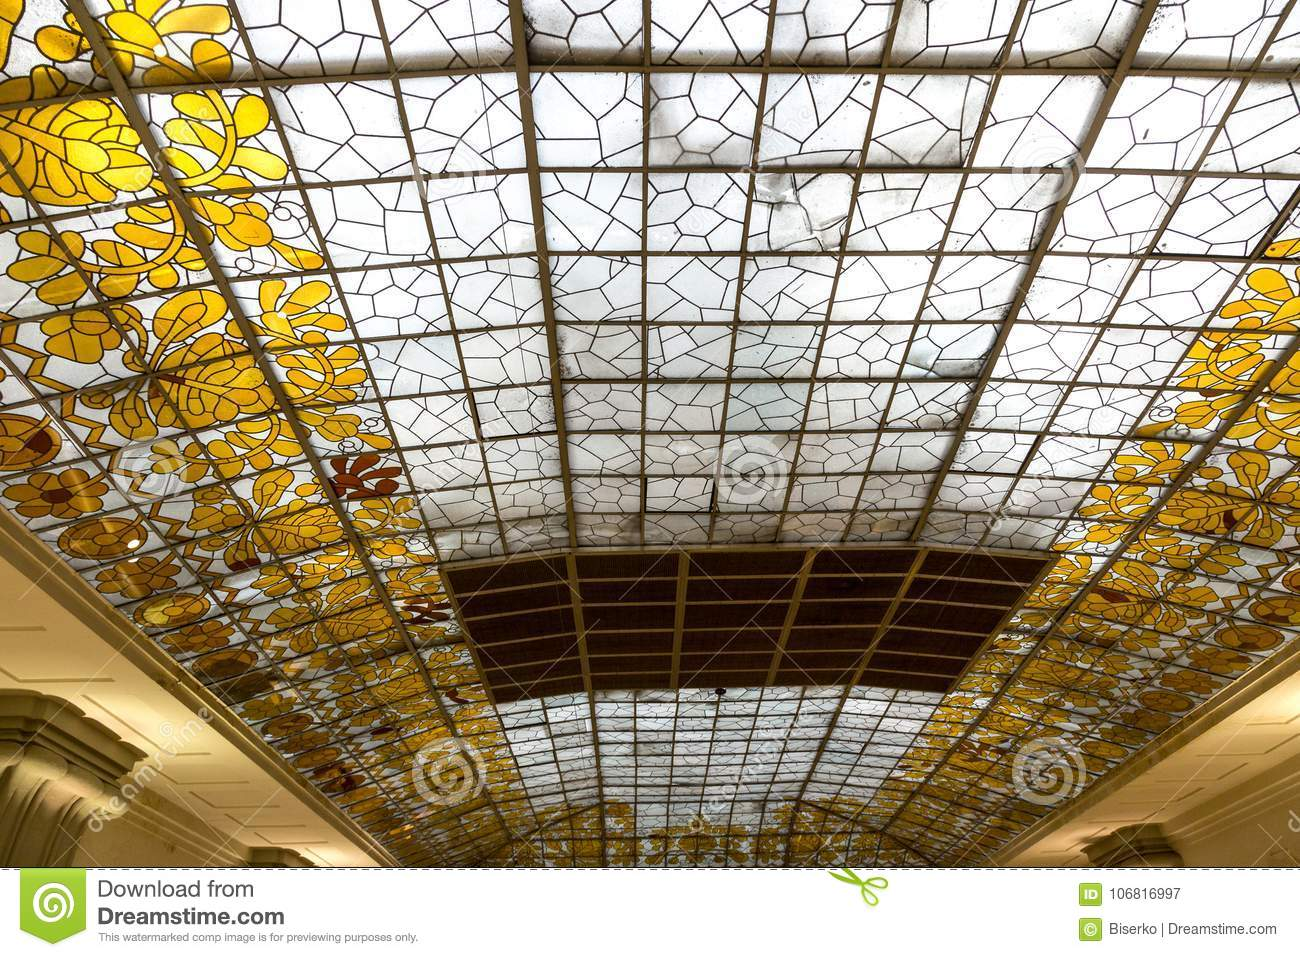 Décoration Art Nouveau Art Deco Glass Ceiling Stock Image Image Of Decoration 106816997